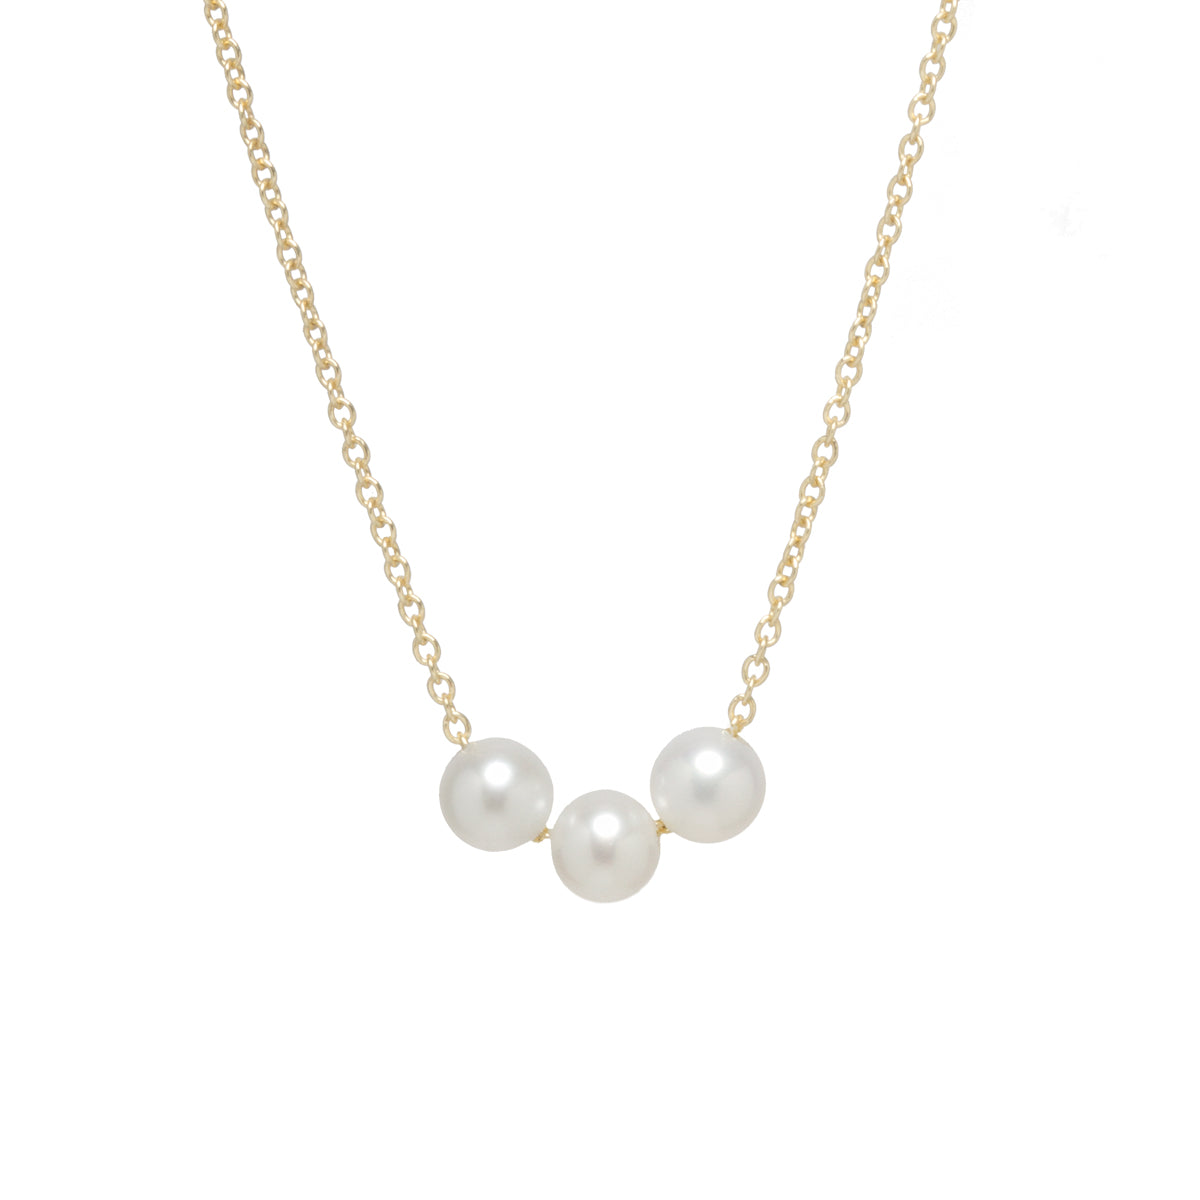 Zoë Chicco 14kt Yellow Gold 3 Small Pearl Necklace